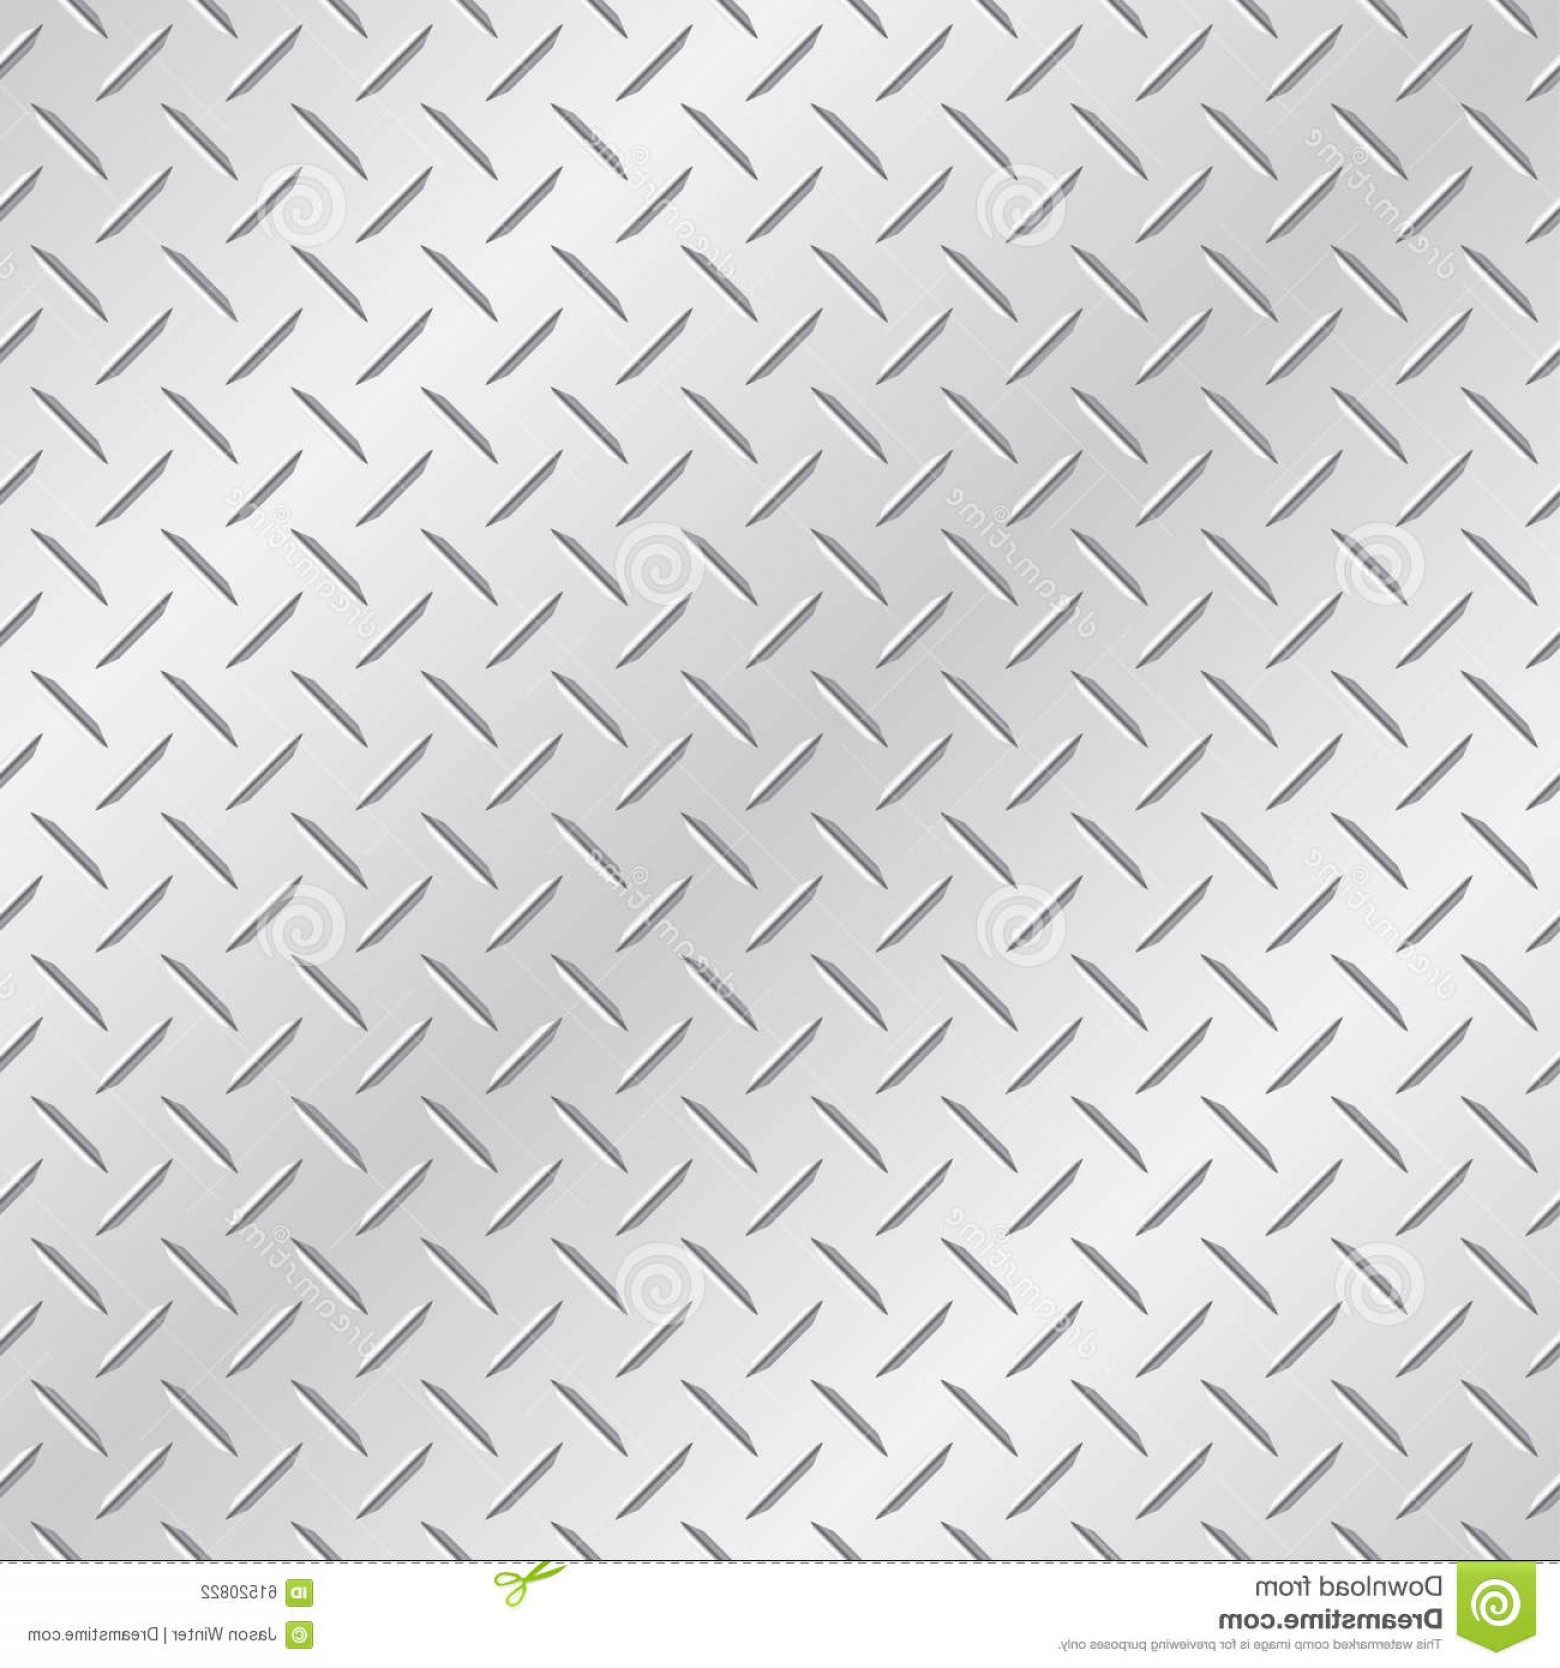 Tread Plate Vector: Stock Illustration Chequer Plate Metal Background Diamond Tileable Vector Wallpaper Repeats Left Right Up Down Image